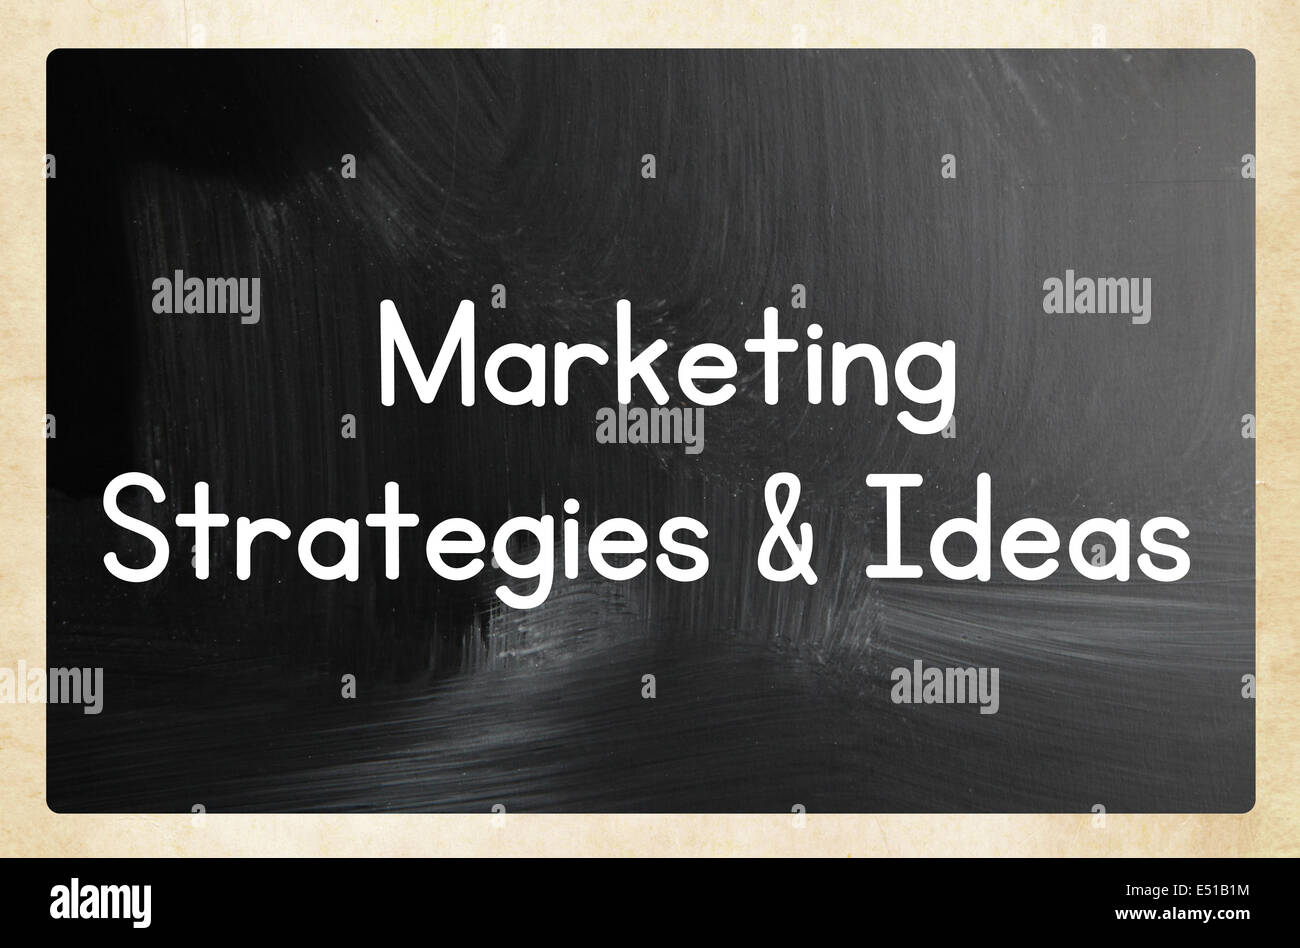 Marketing-Strategien-Ideen Stockbild